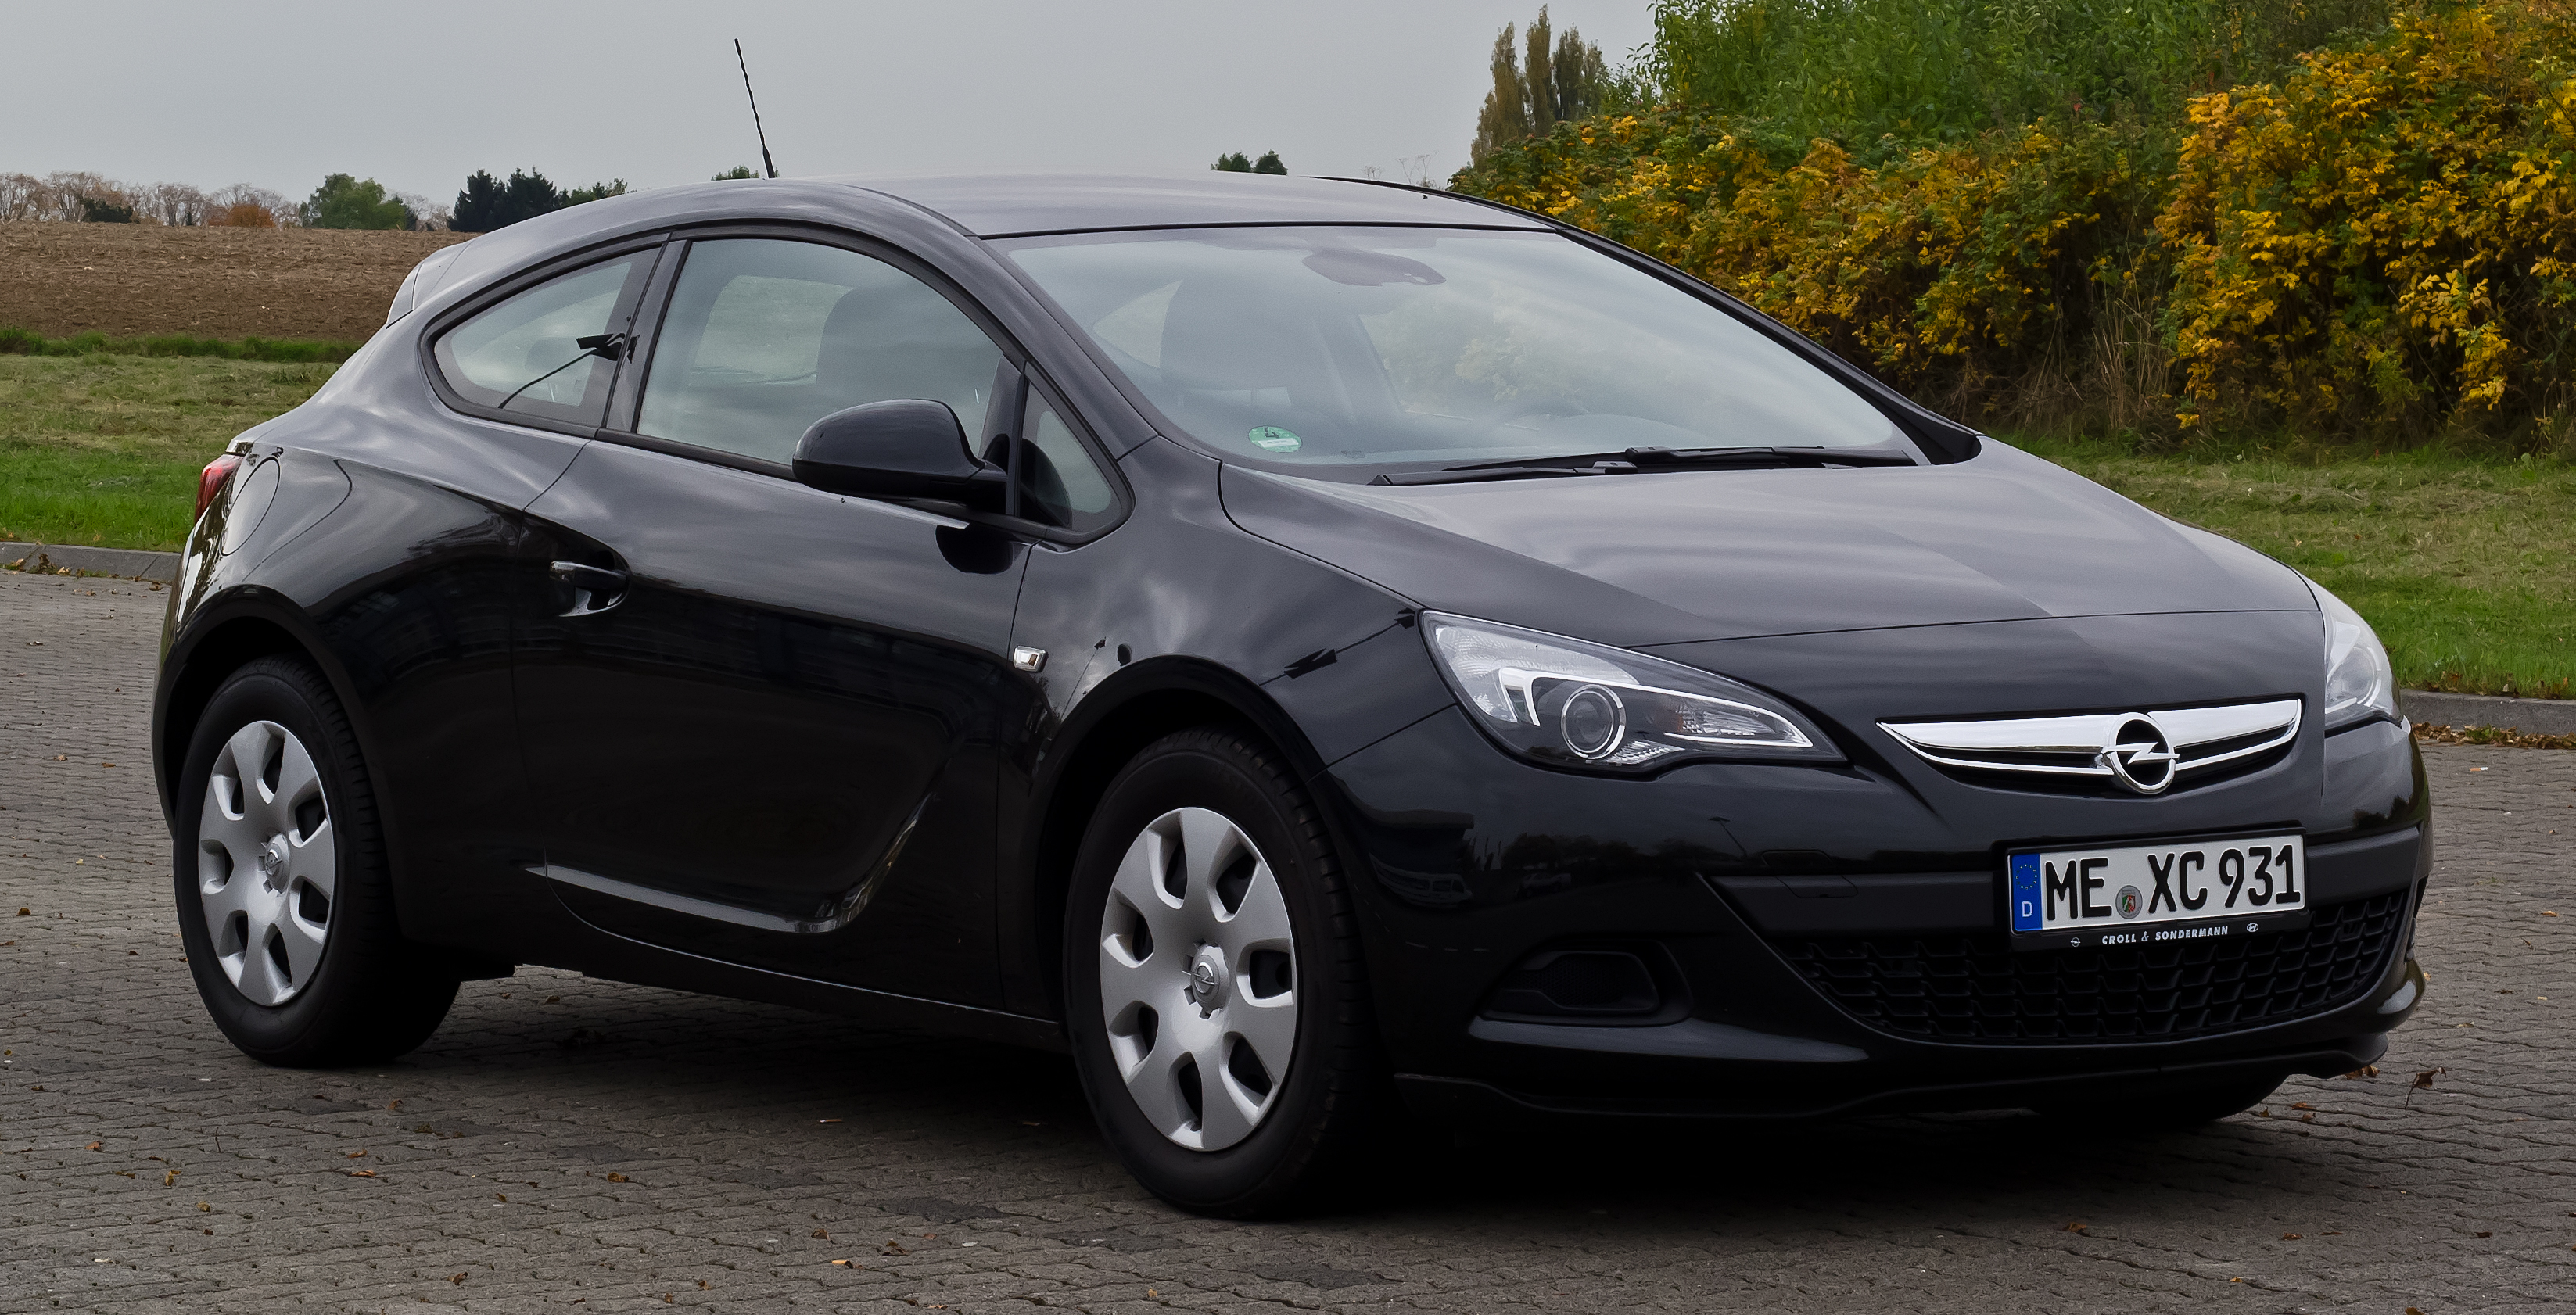 opel astra 2013 1.4 turbo review